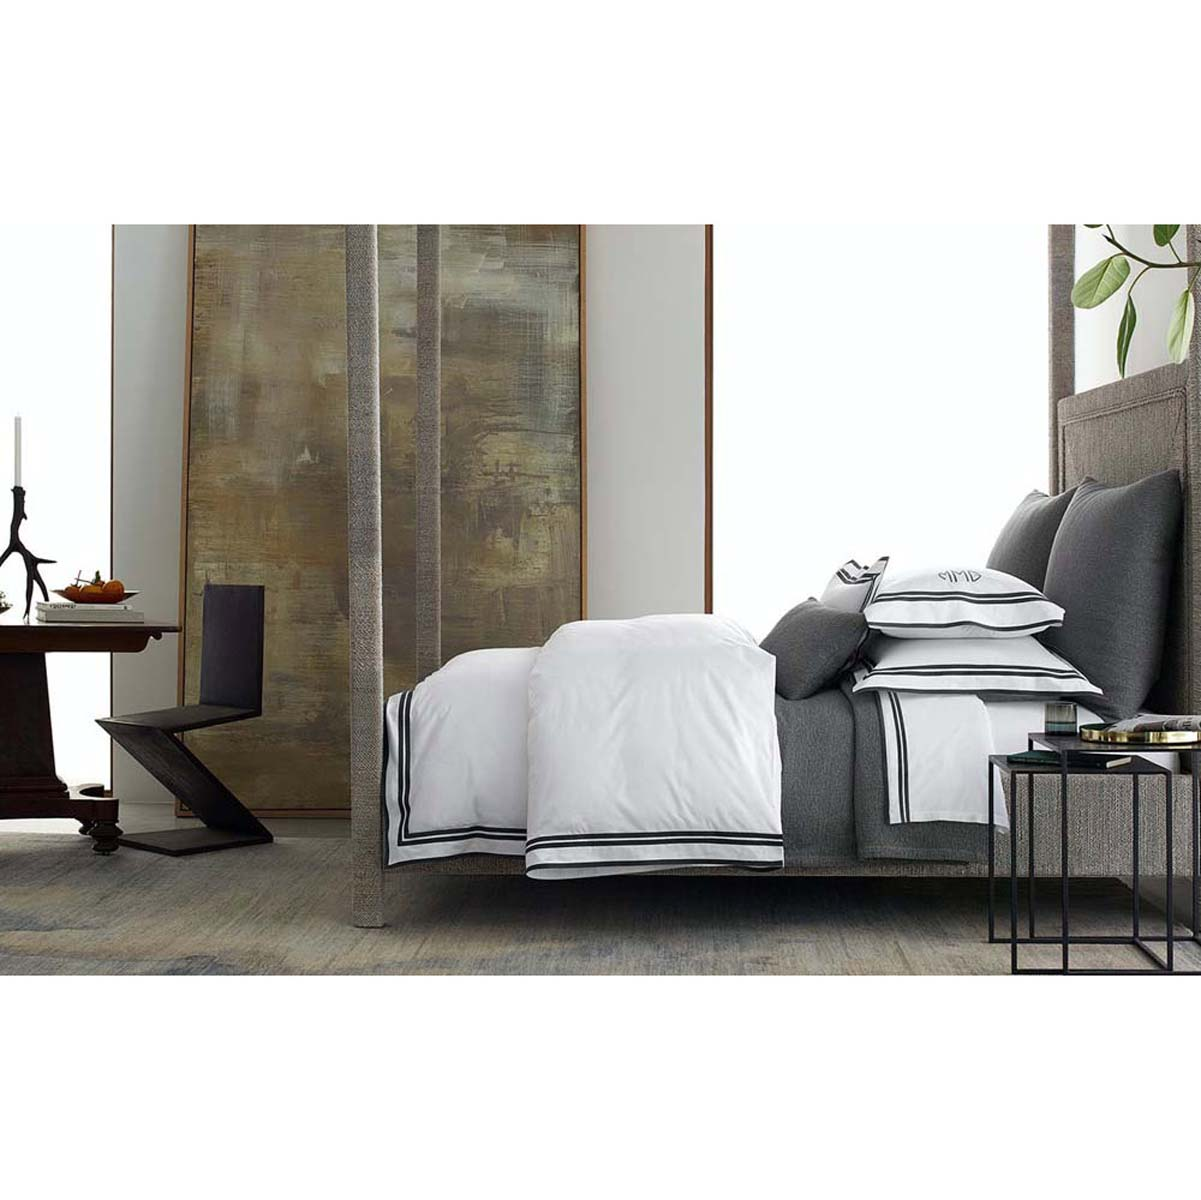 Delightful Meridian Luxury Bed Linens By Matouk